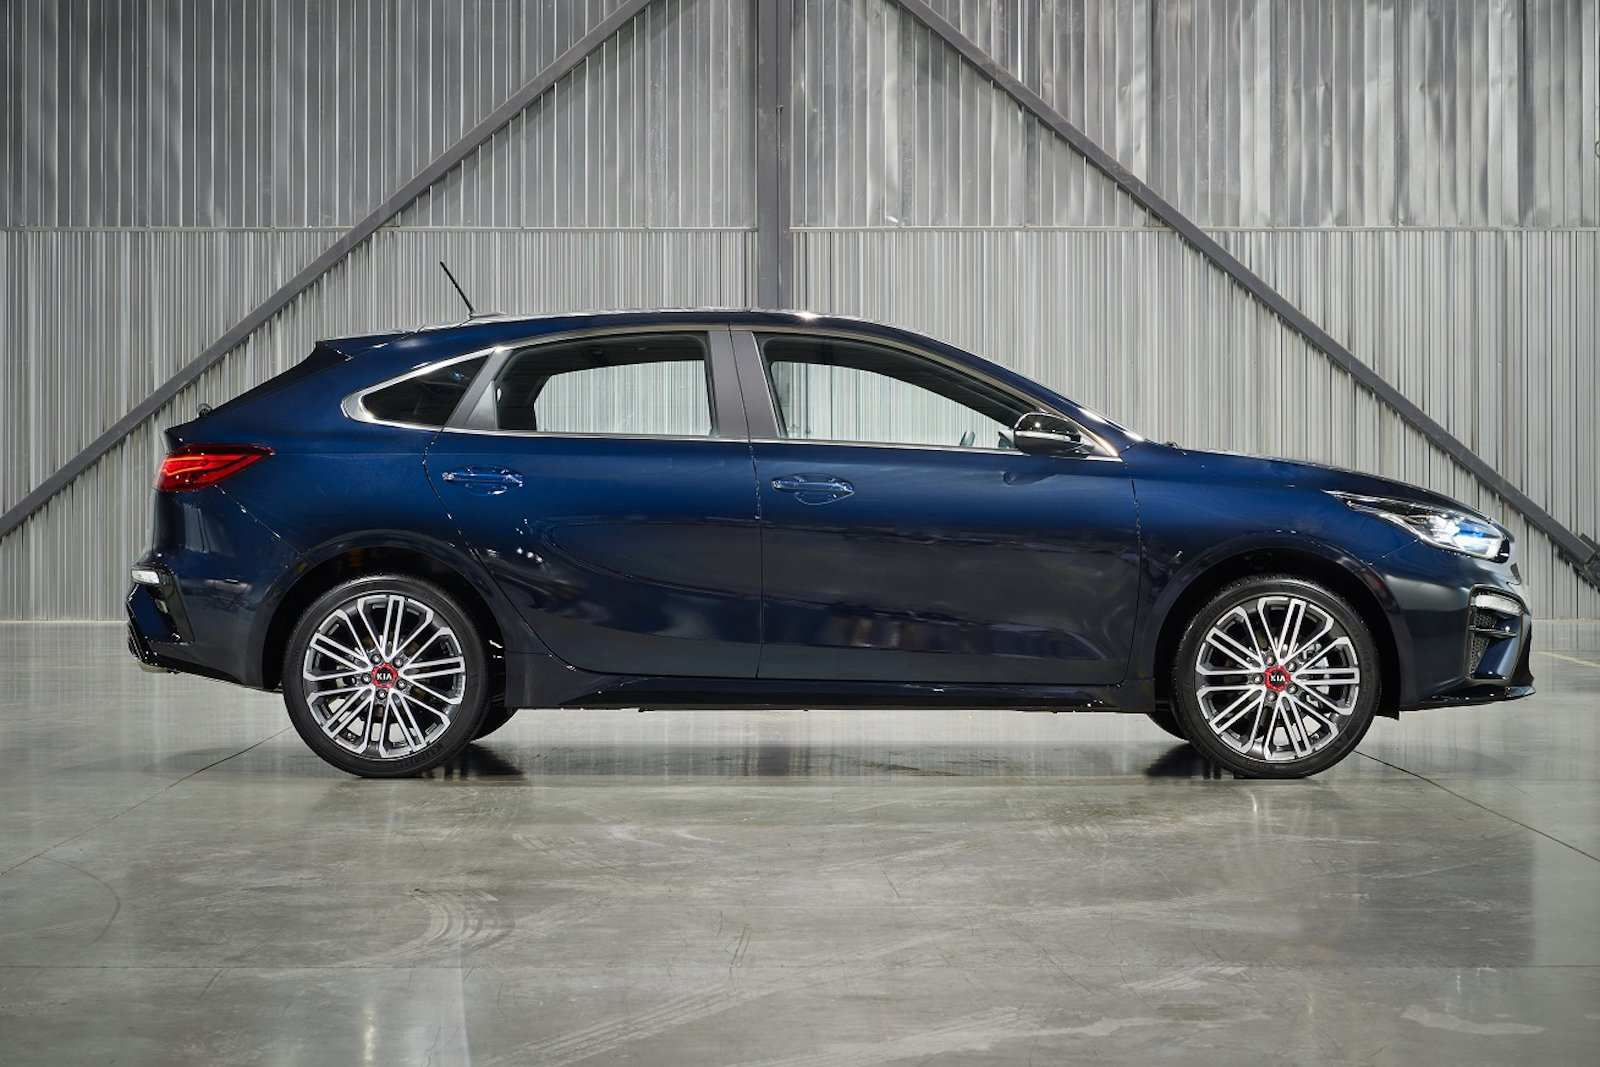 39 Best Review 2020 Kia Forte Hatchback Review by 2020 Kia Forte Hatchback